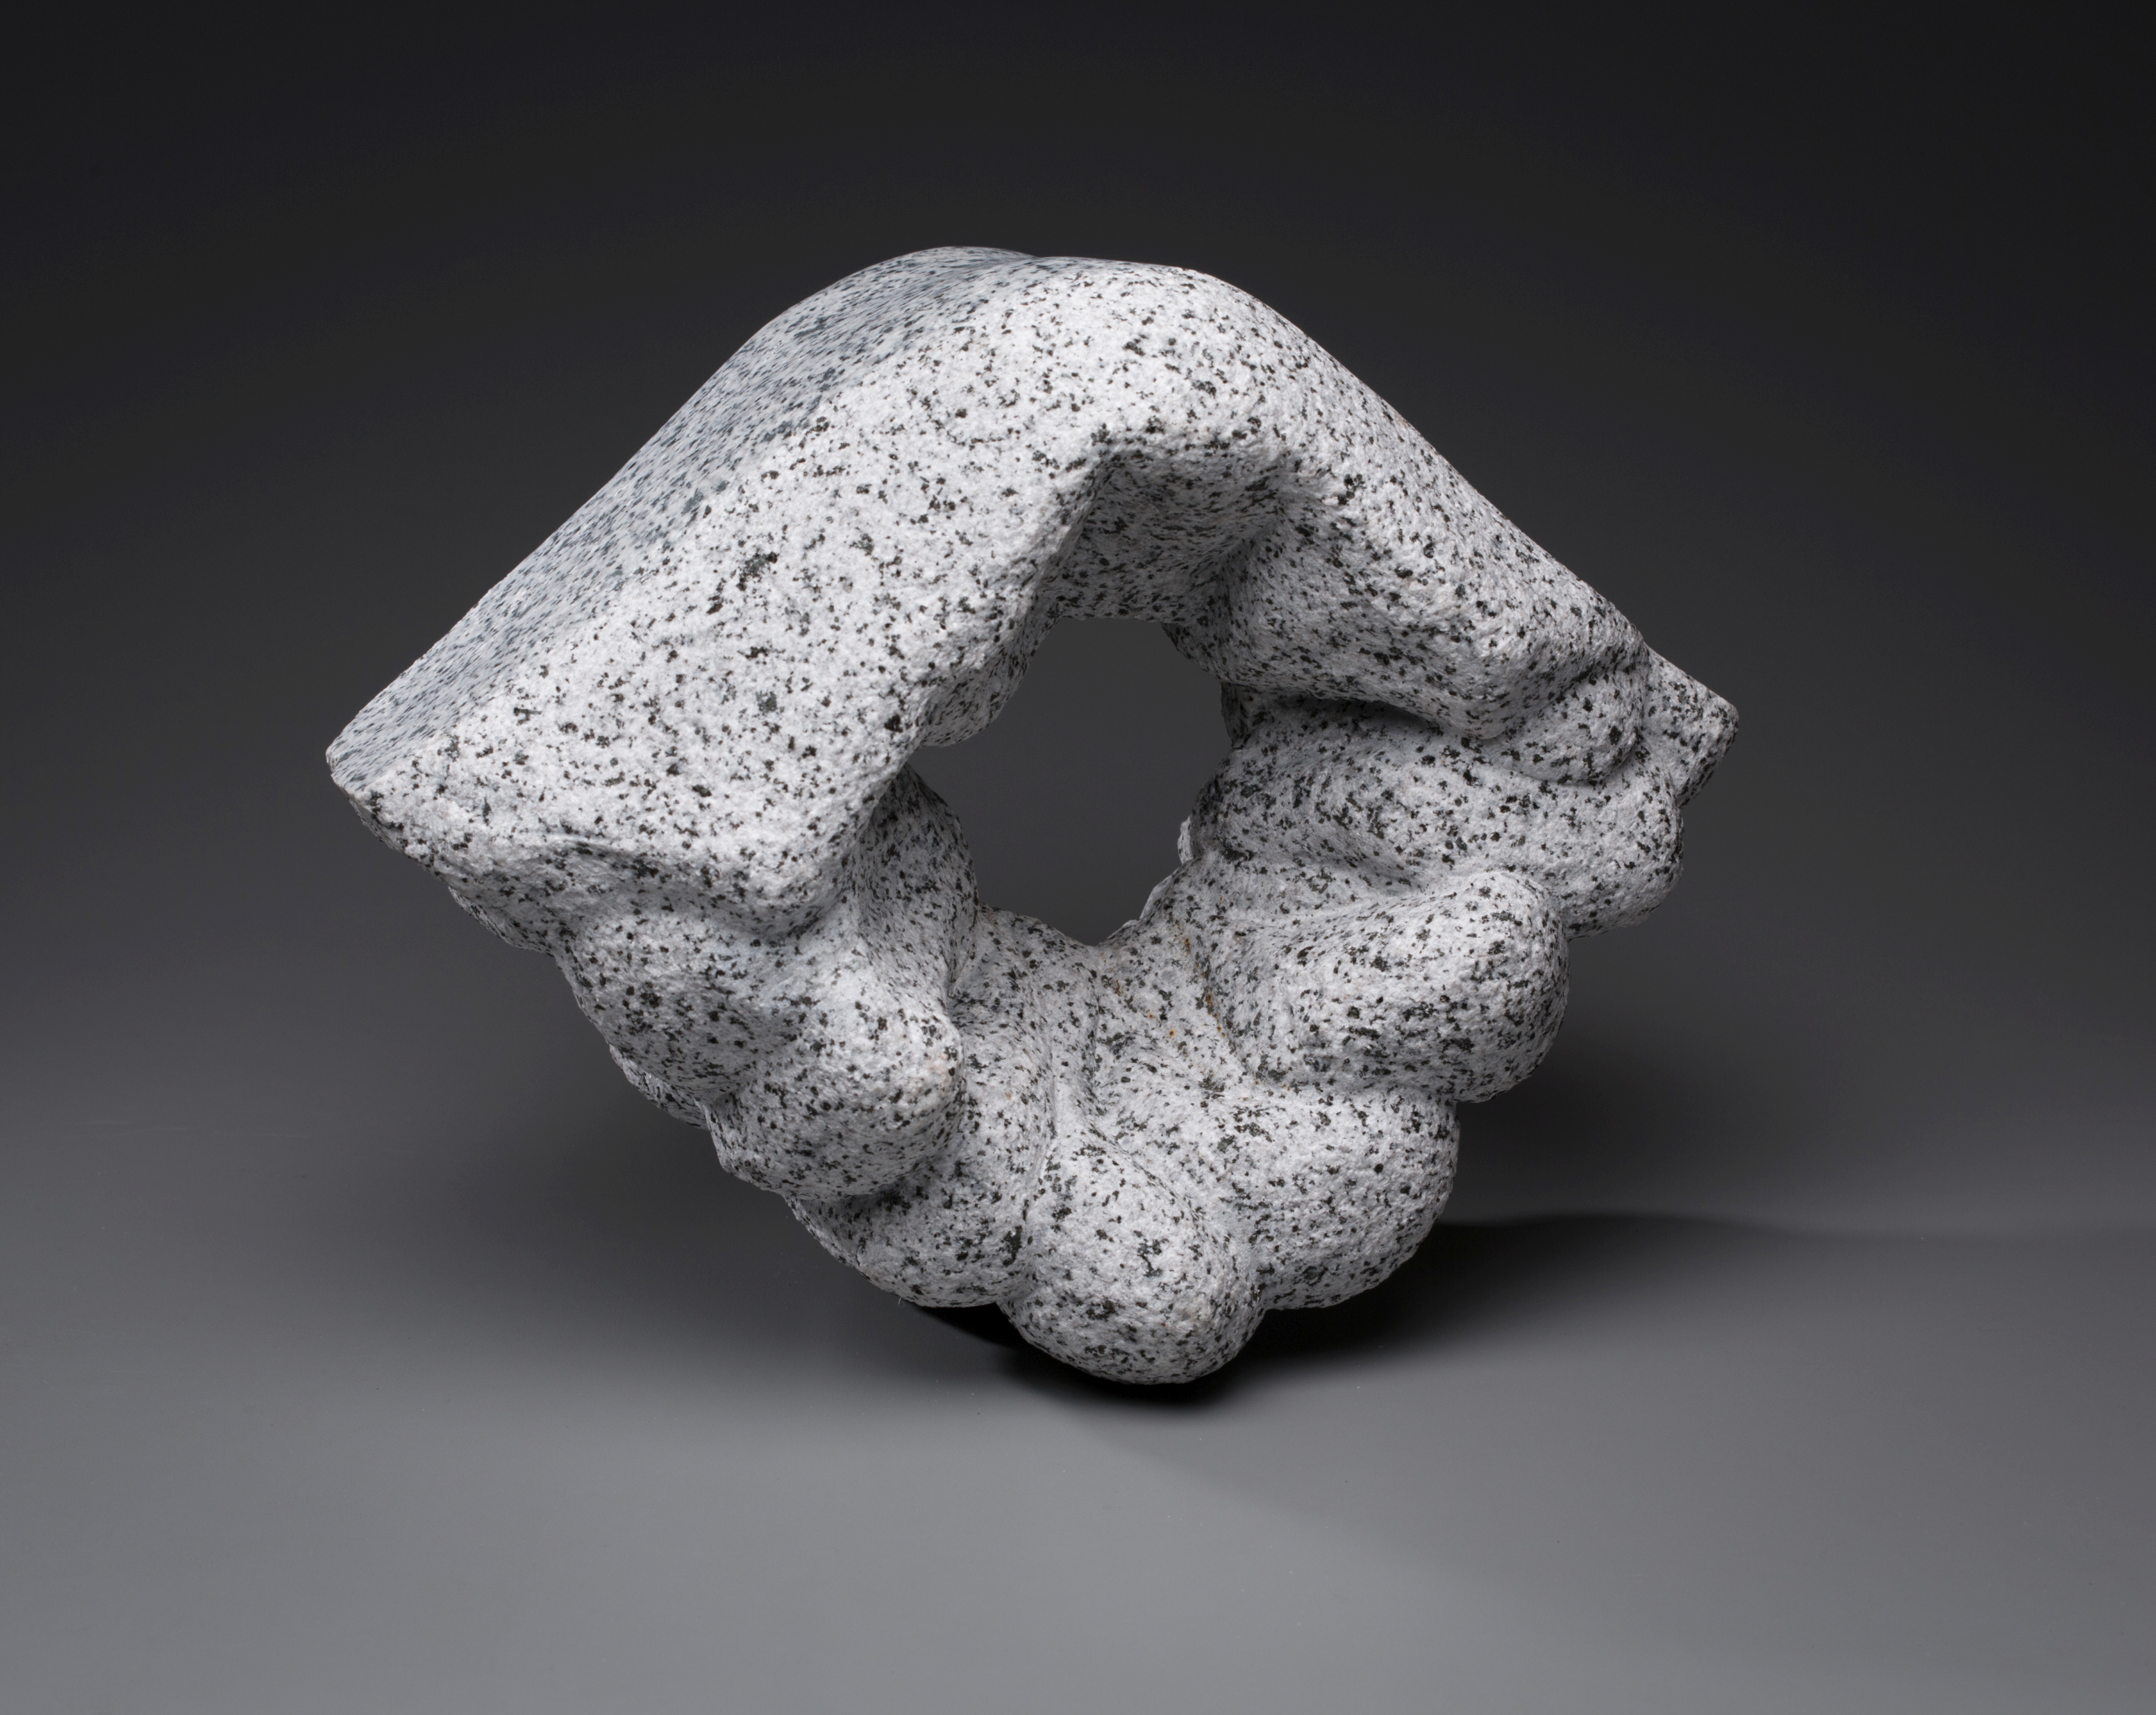 Ra 2016, granite by Ben Mefford